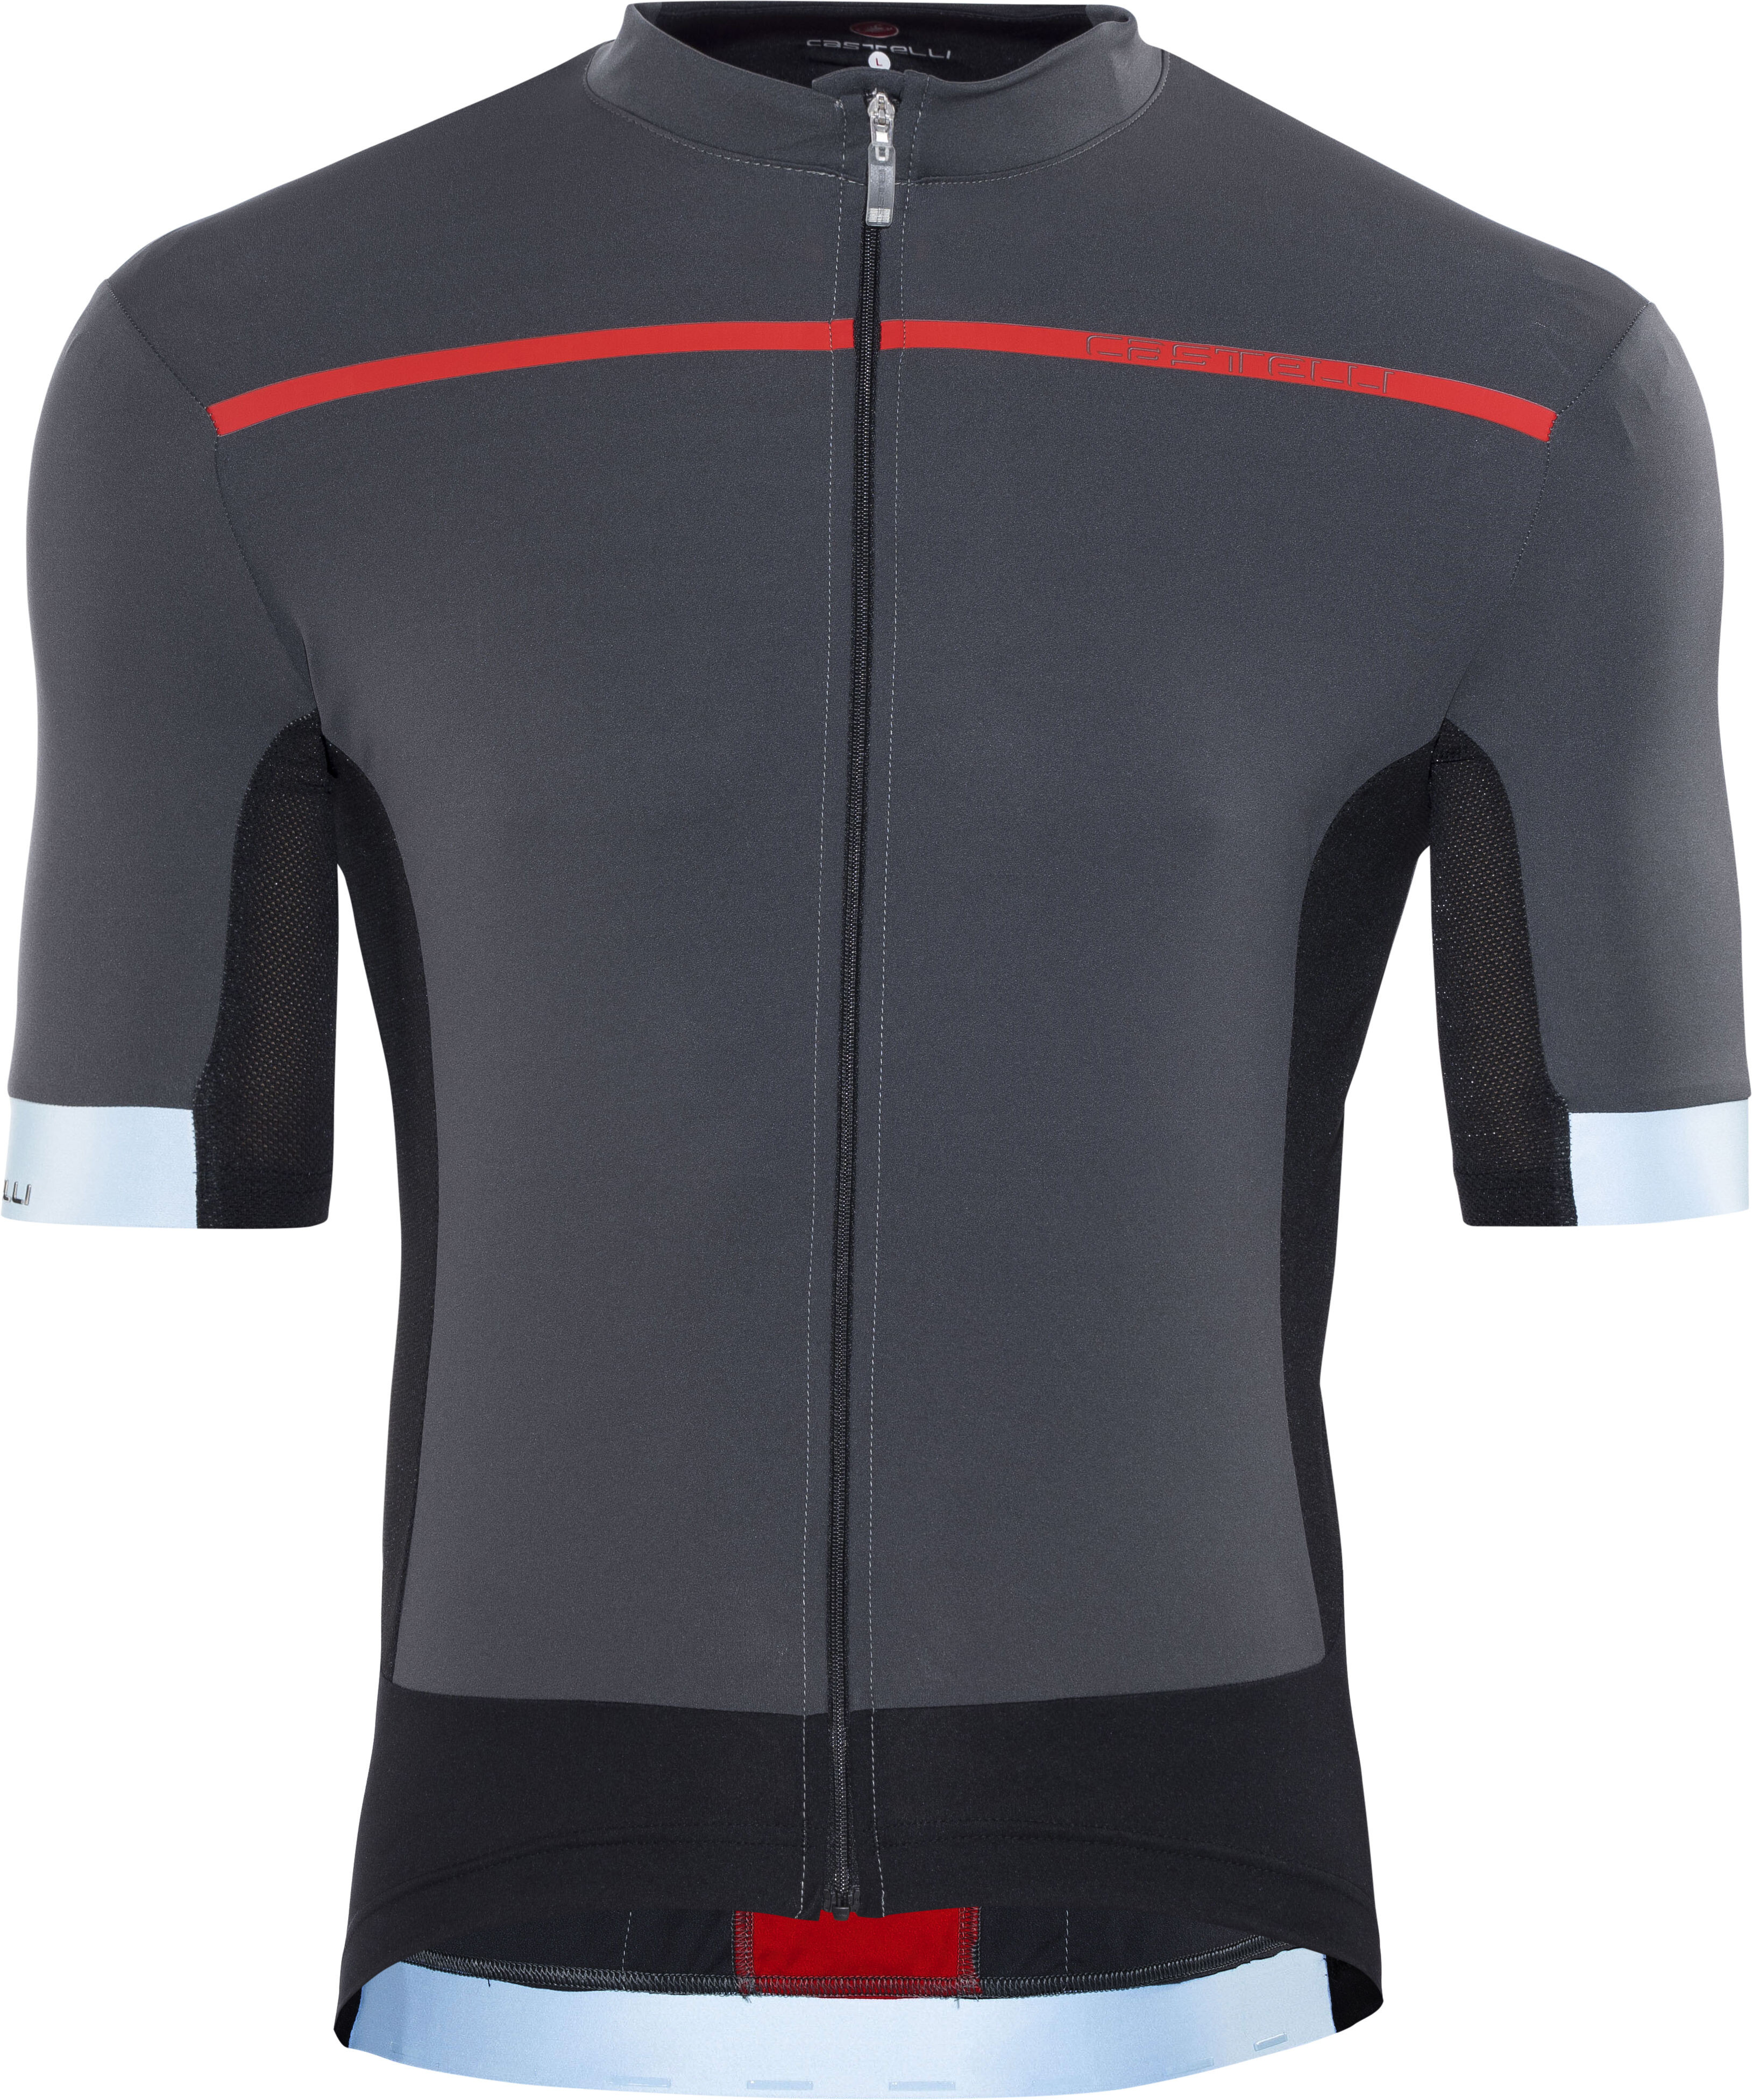 Castelli Forza Pro Bike Jersey Shortsleeve Men grey red at Bikester ... 0067d2fc4